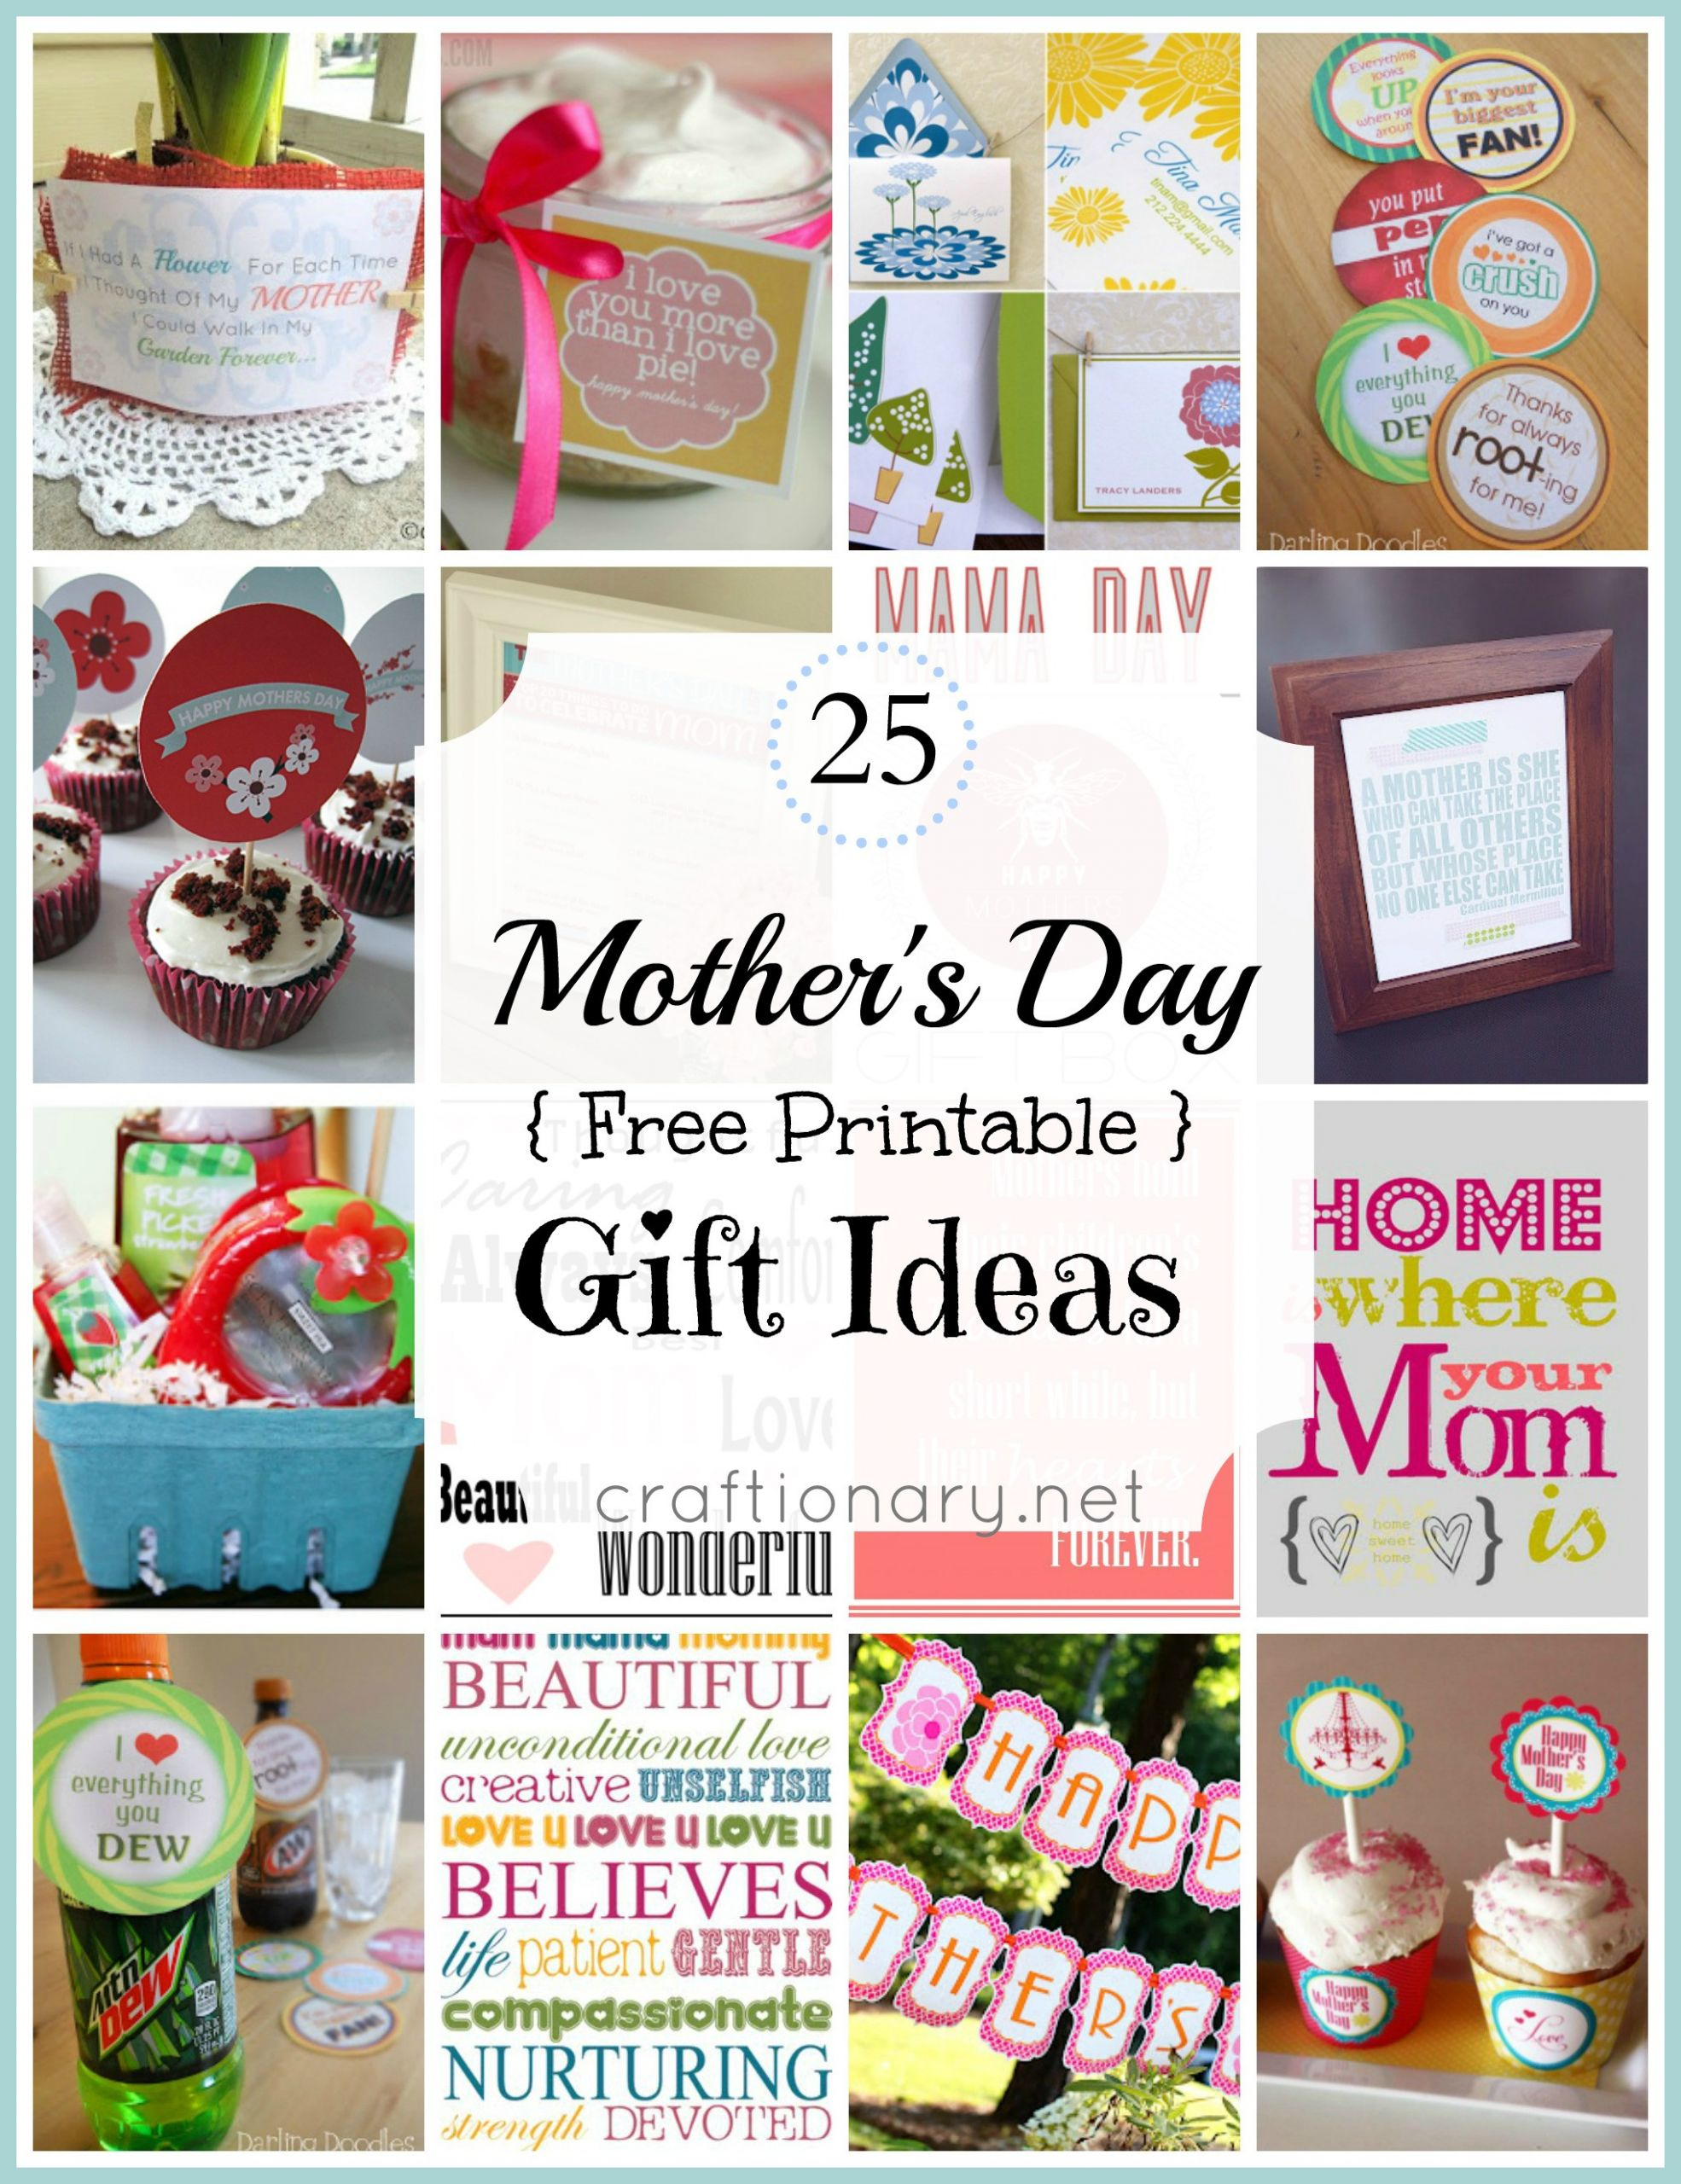 Great Mothers Day Gift Ideas  Craftionary